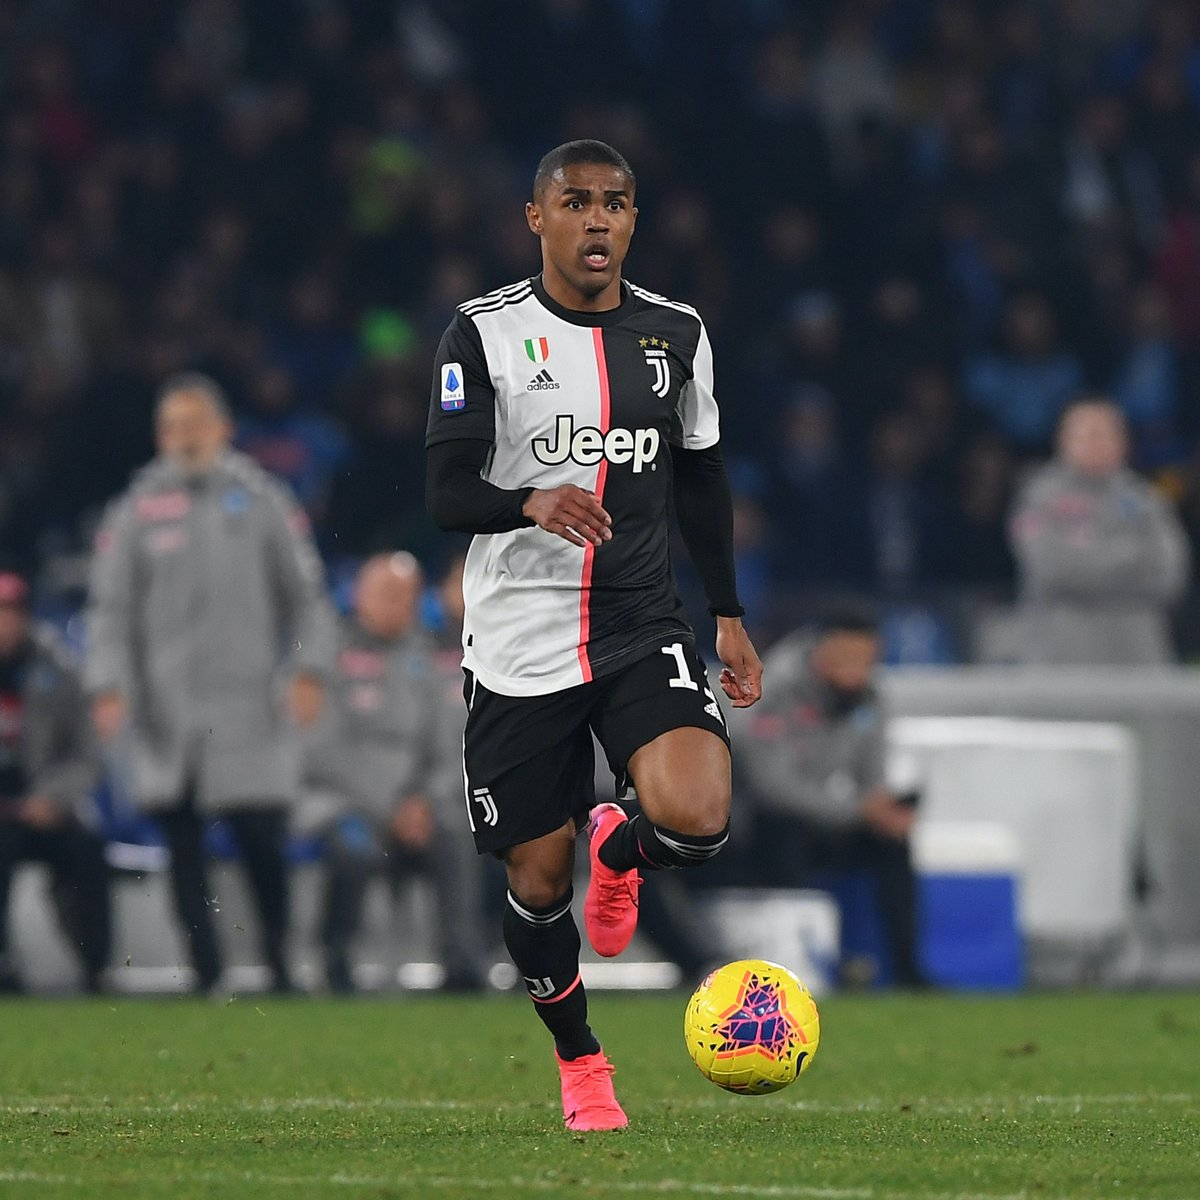 After signing Nelson Semedo from Barcelona, Wolves are now set to sign Juventus winger Douglas Costa to replace Diogo Jota, according to Tuttosport 👀 https://t.co/ySoElChj4m